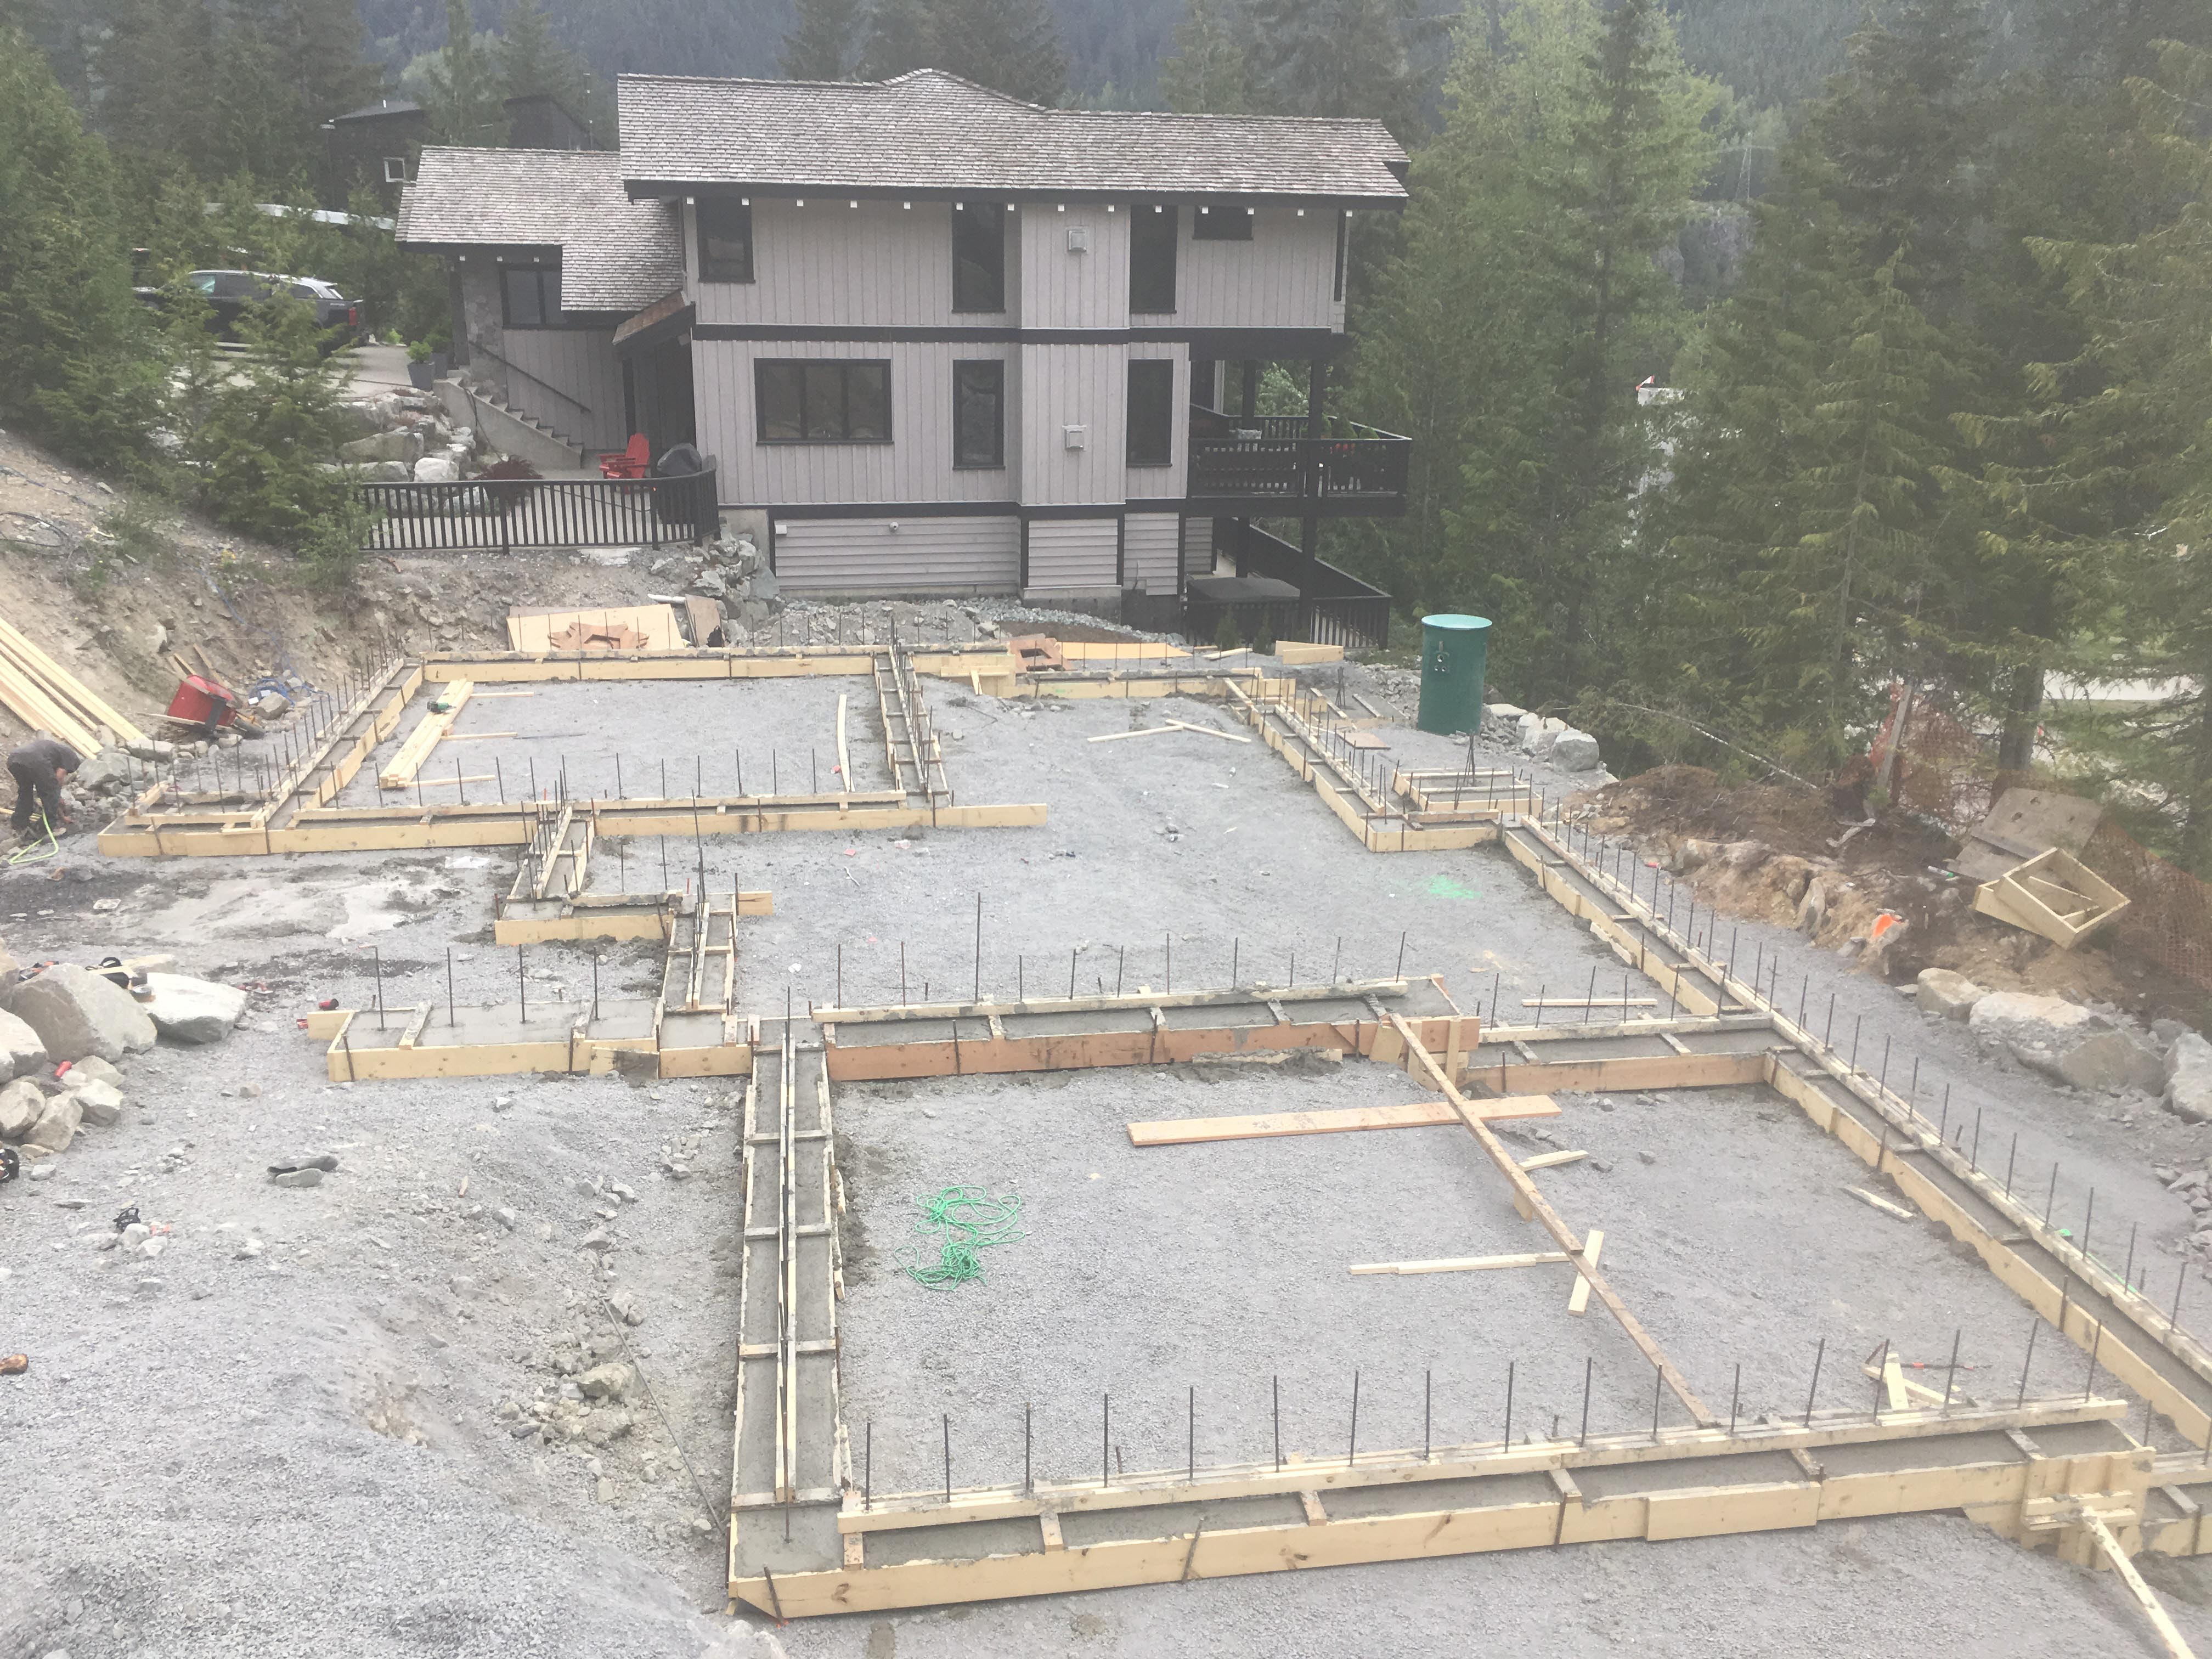 Pound 4 Pound, Framing and Forming. Foundations Whistler